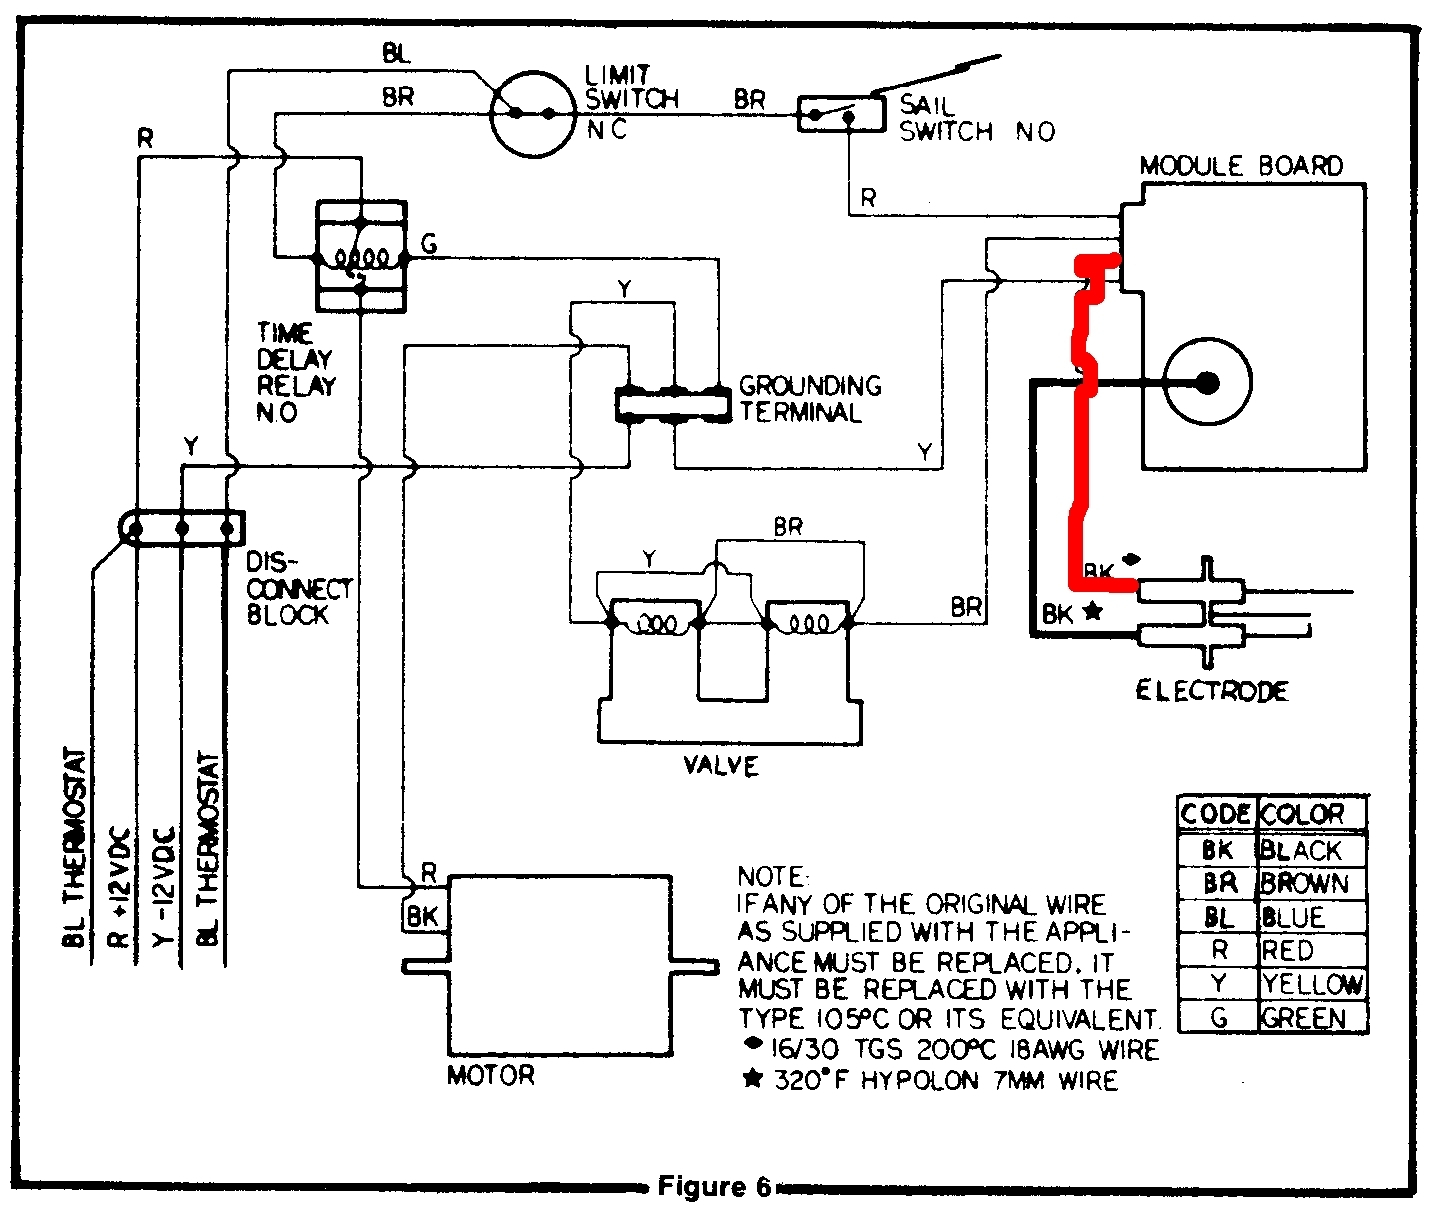 hight resolution of dometic digital thermostat wiring diagram gallery digital thermostat wiring diagram